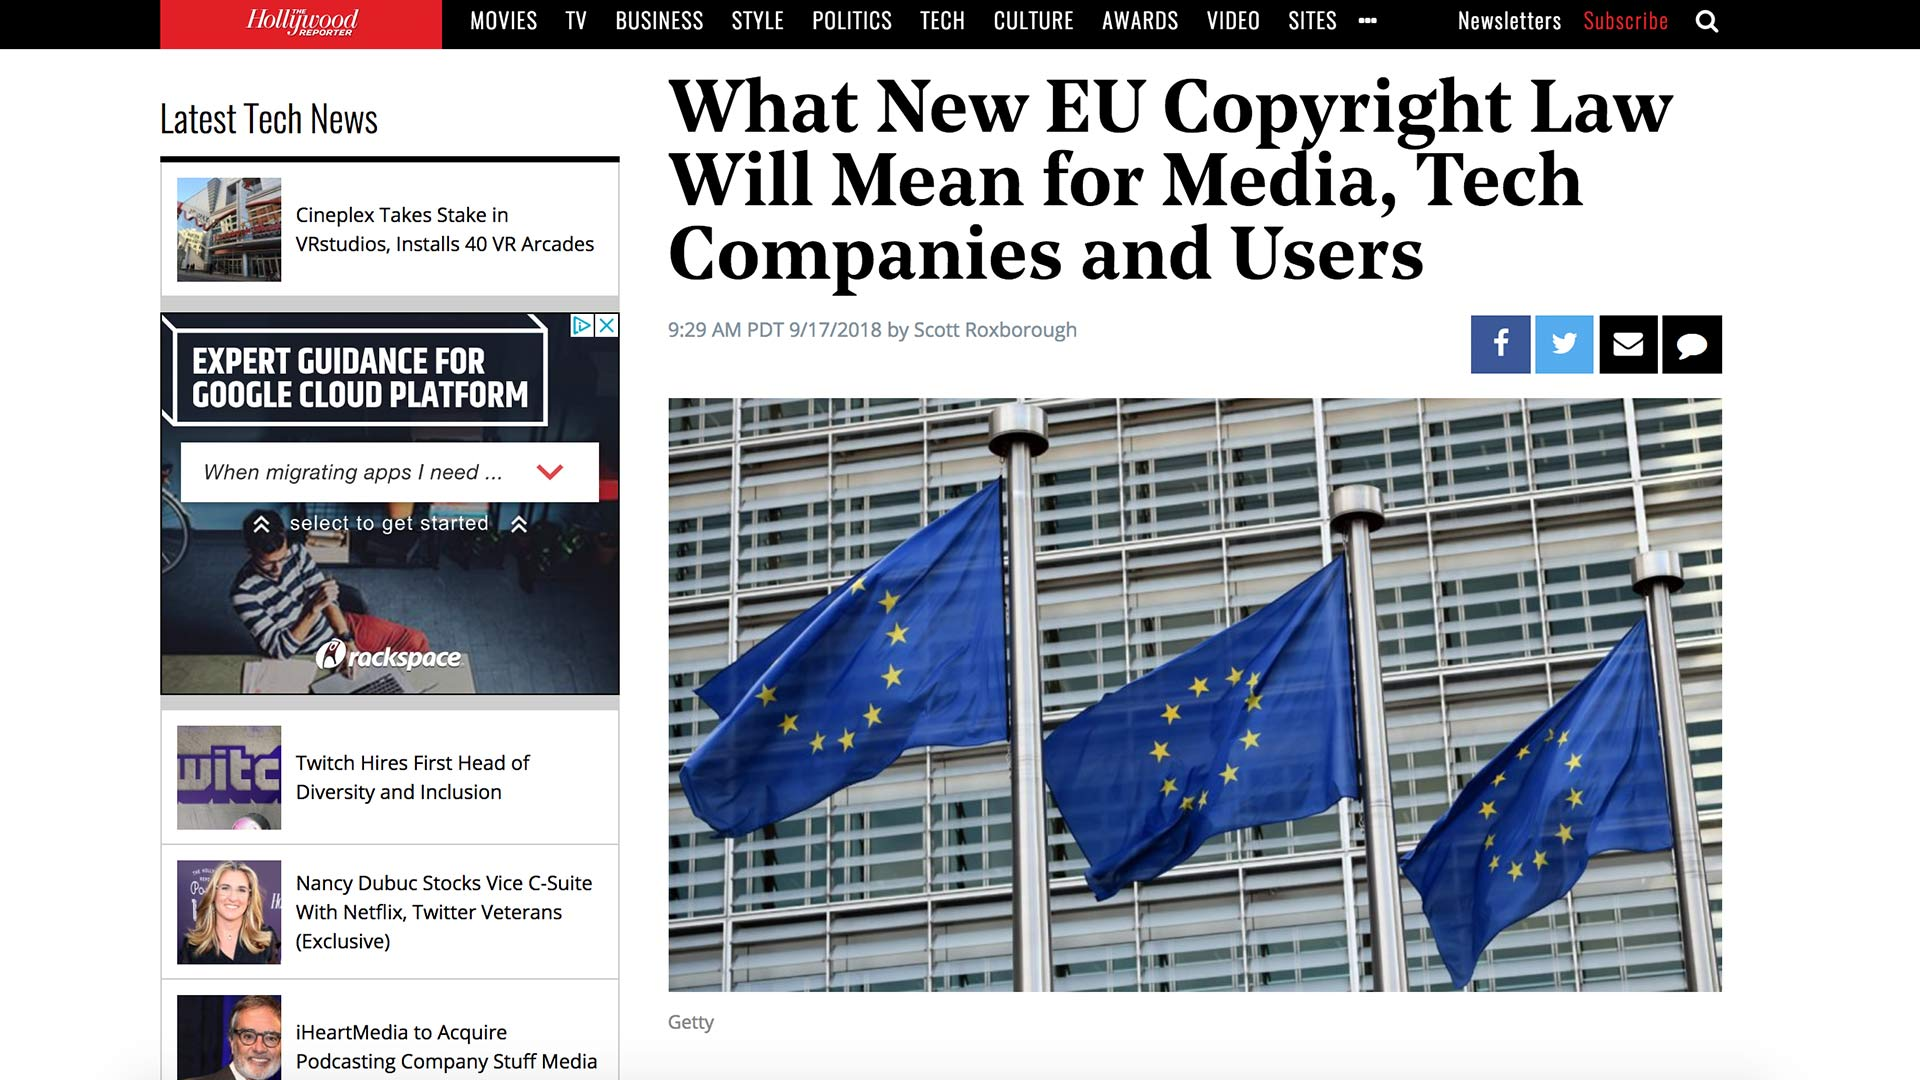 Fairness Rocks News What New EU Copyright Law Will Mean for Media, Tech Companies and Users